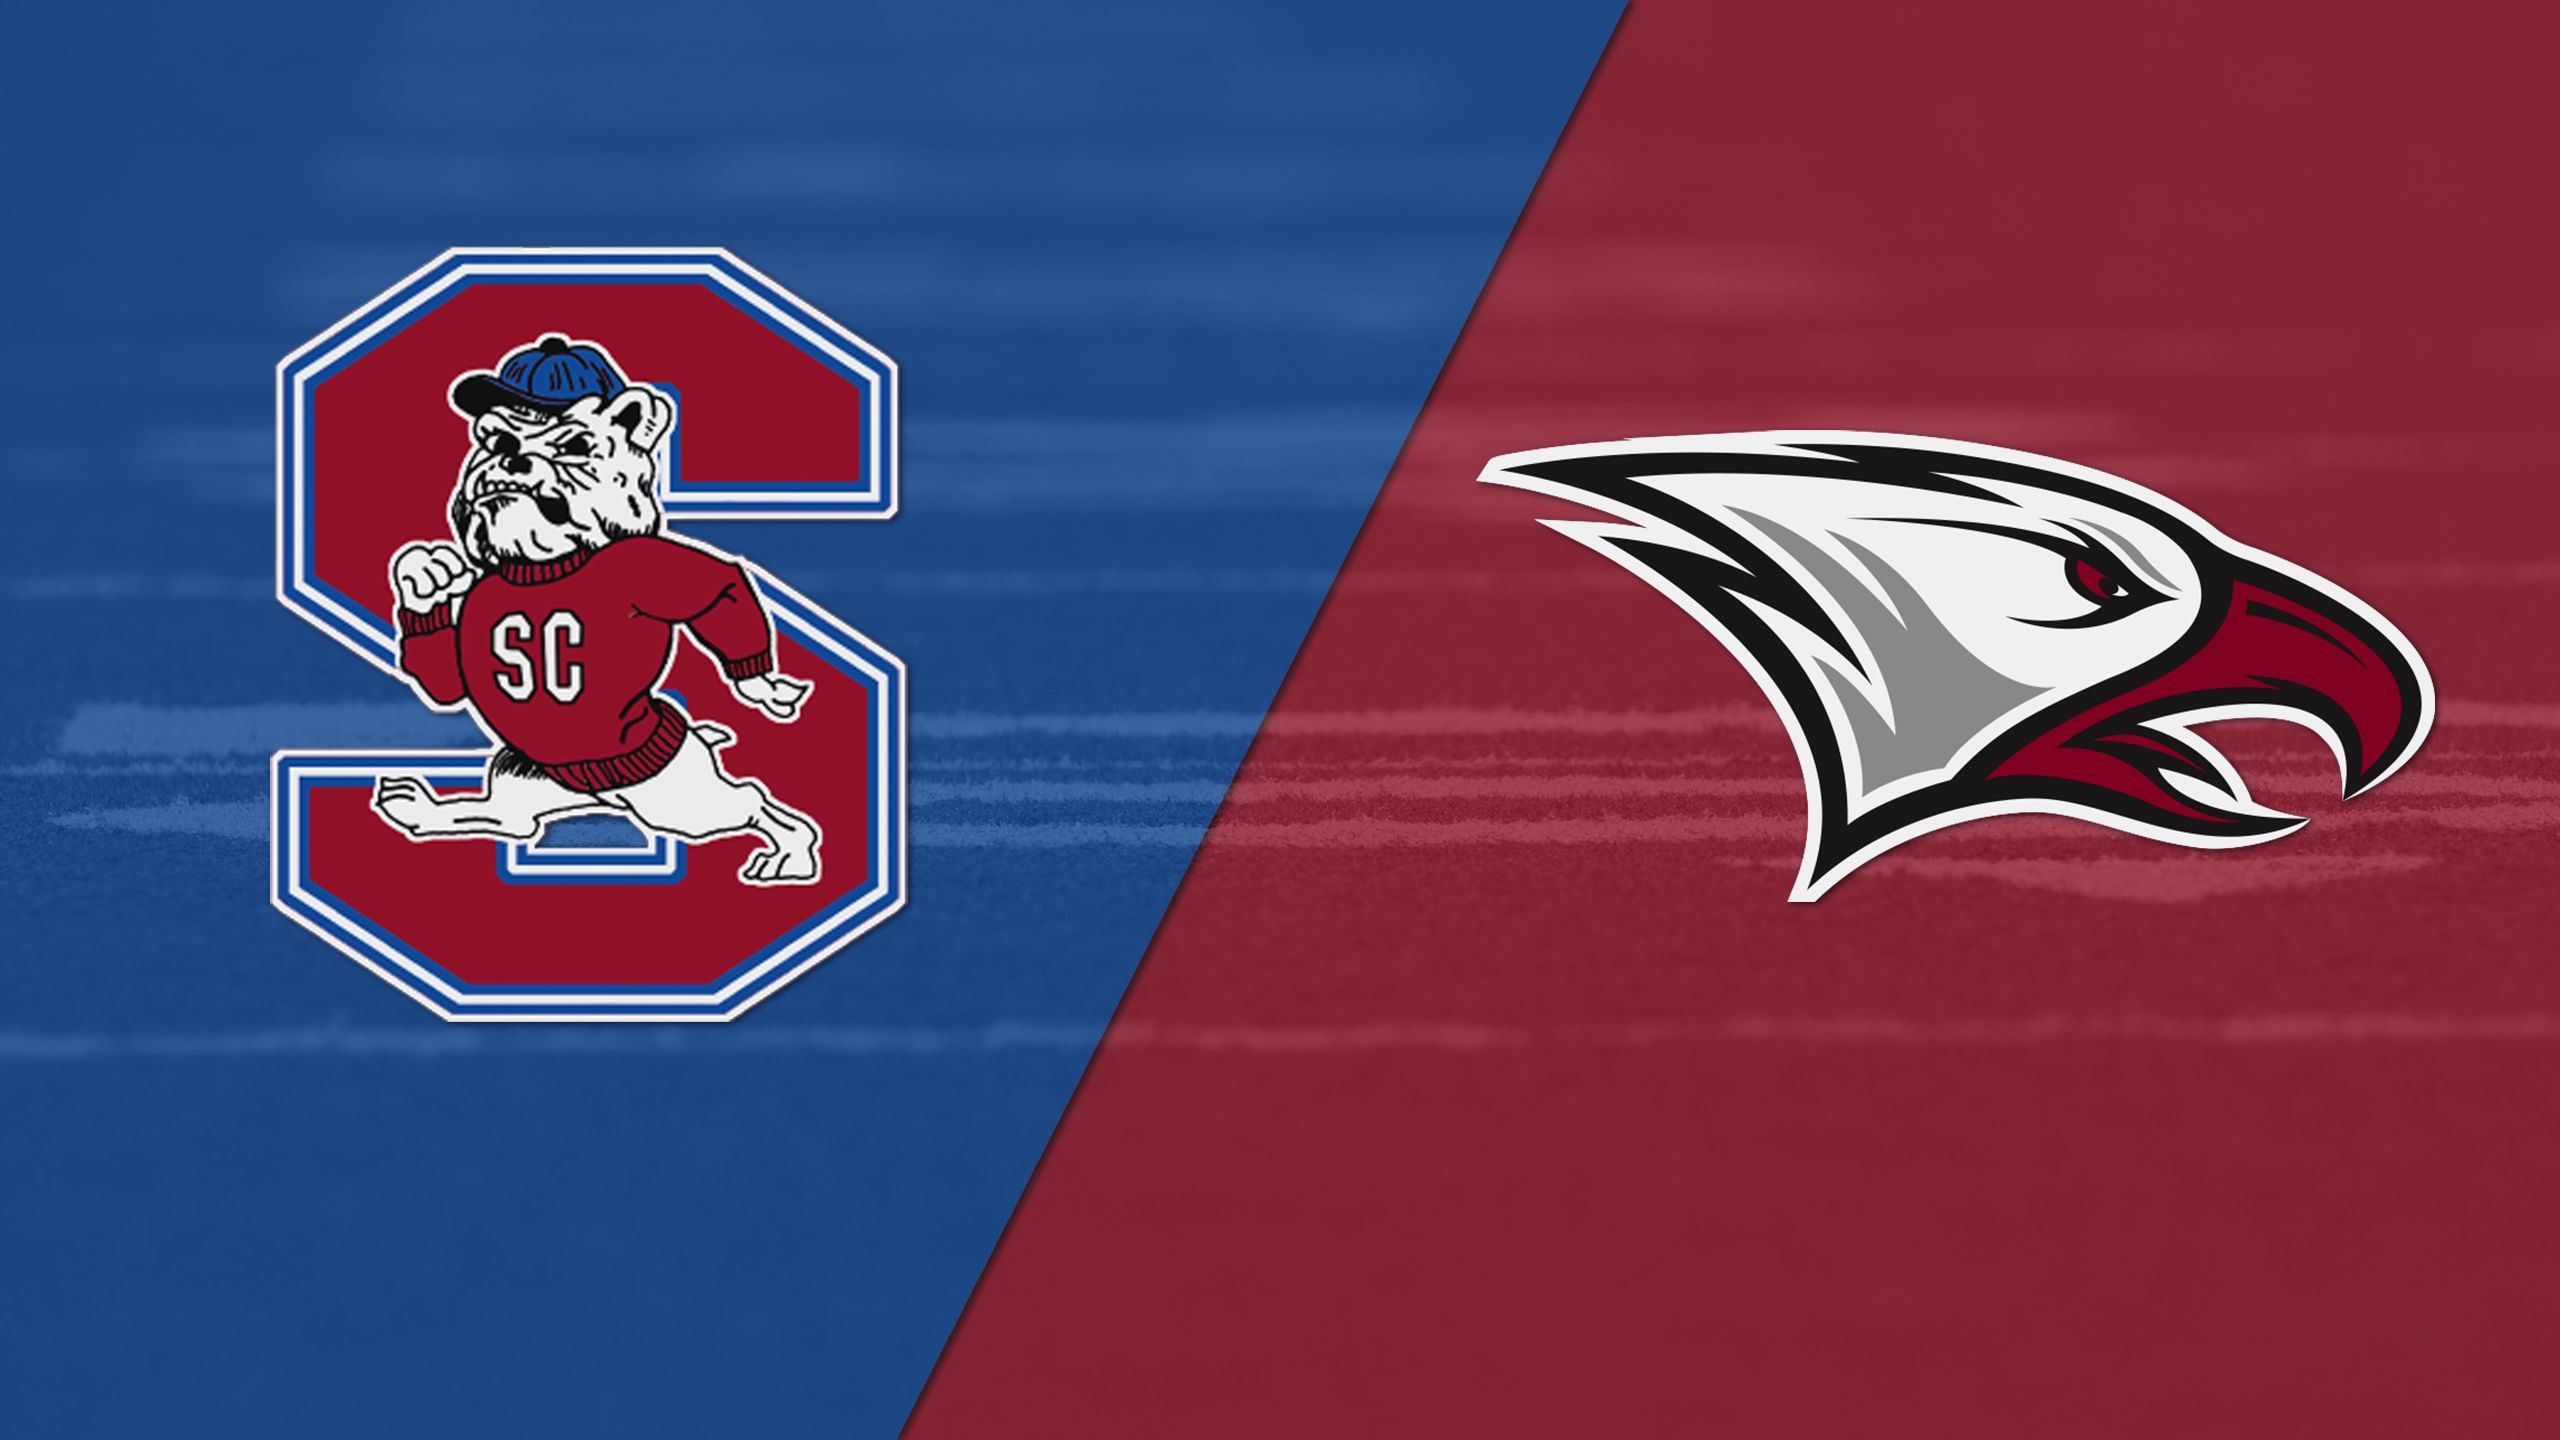 South Carolina State vs. North Carolina Central (Football) (re-air)